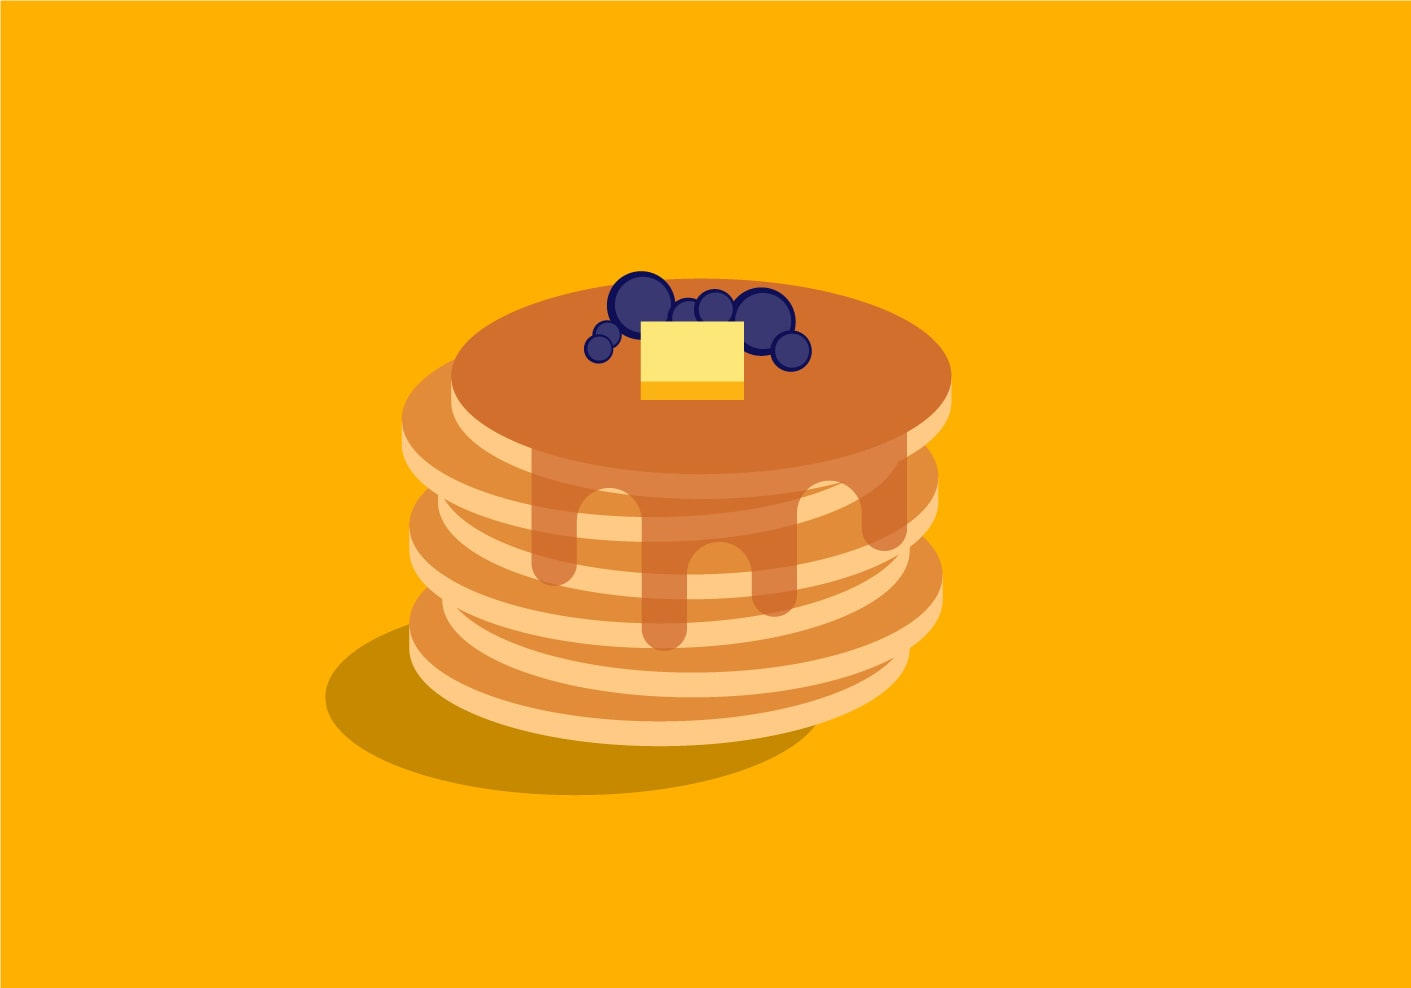 A stack of pancakes with syrup, blueberries and butter on top.